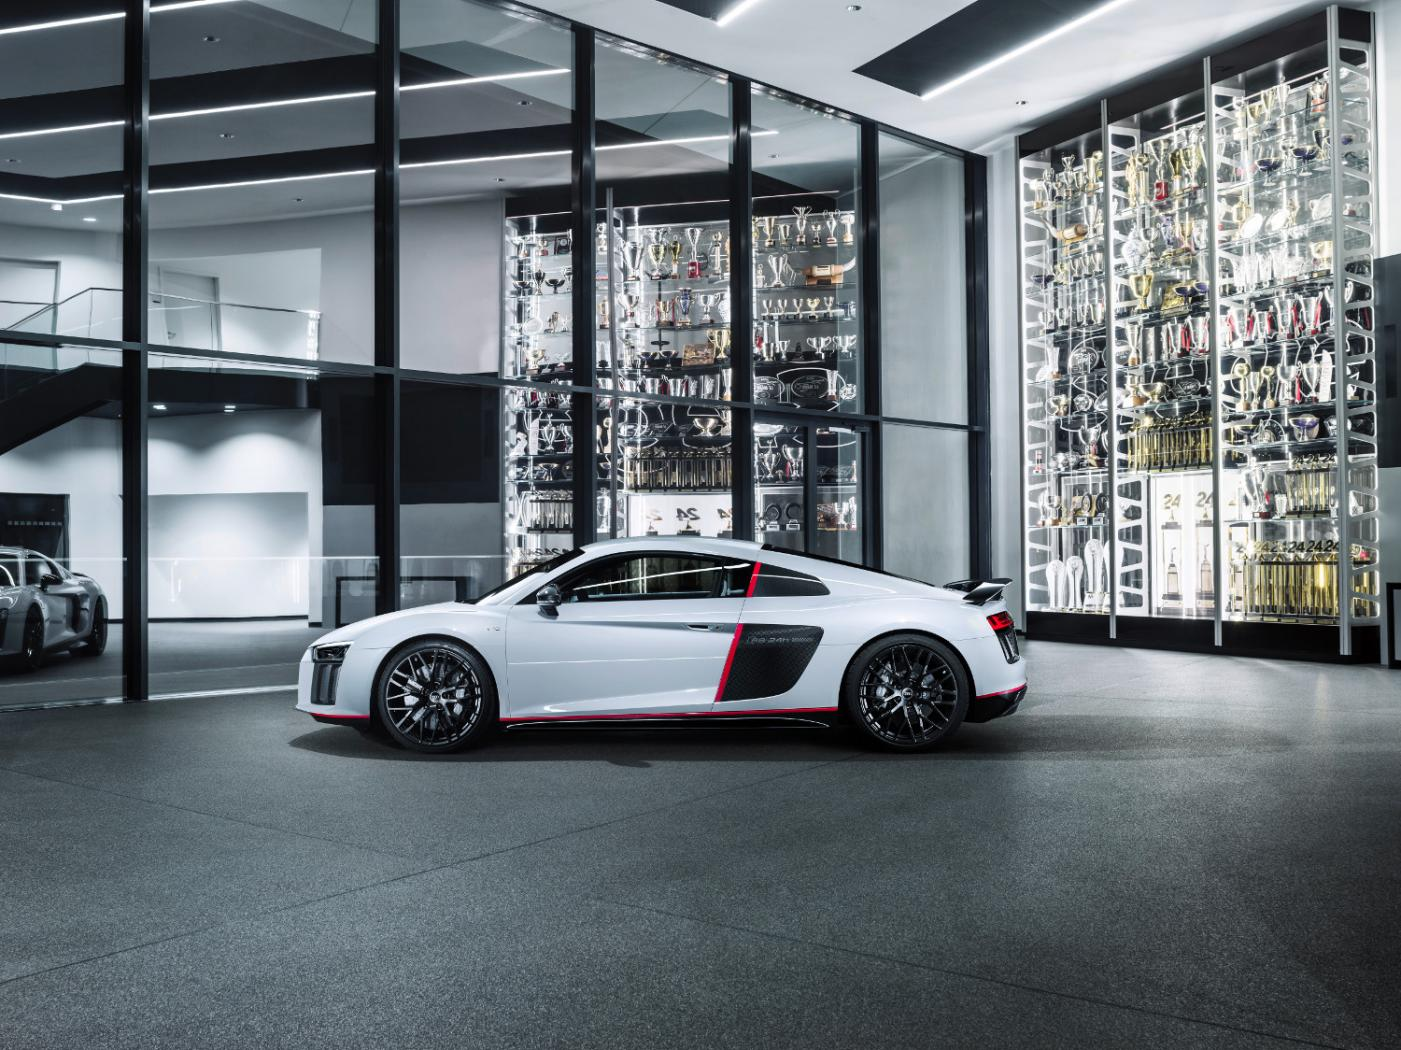 2-audi-r8-coupe-v10-plus-selection-24h.jpeg